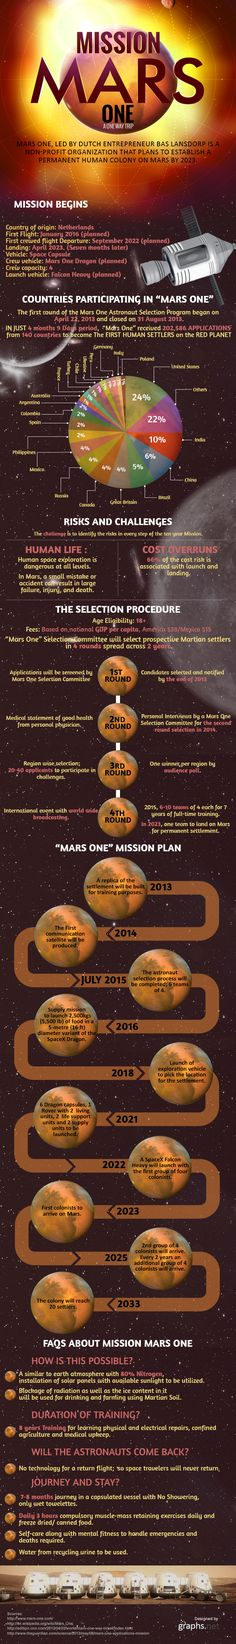 Mars One is a non-profit foundation that plans to establish a permanent human settlement on Mars by 2023. The private spaceflight project is led by Dutch entrepreneurBas Lansdorp and has been endorsed byNobel Prize-winning physicistGerard't Hooft. #Mars